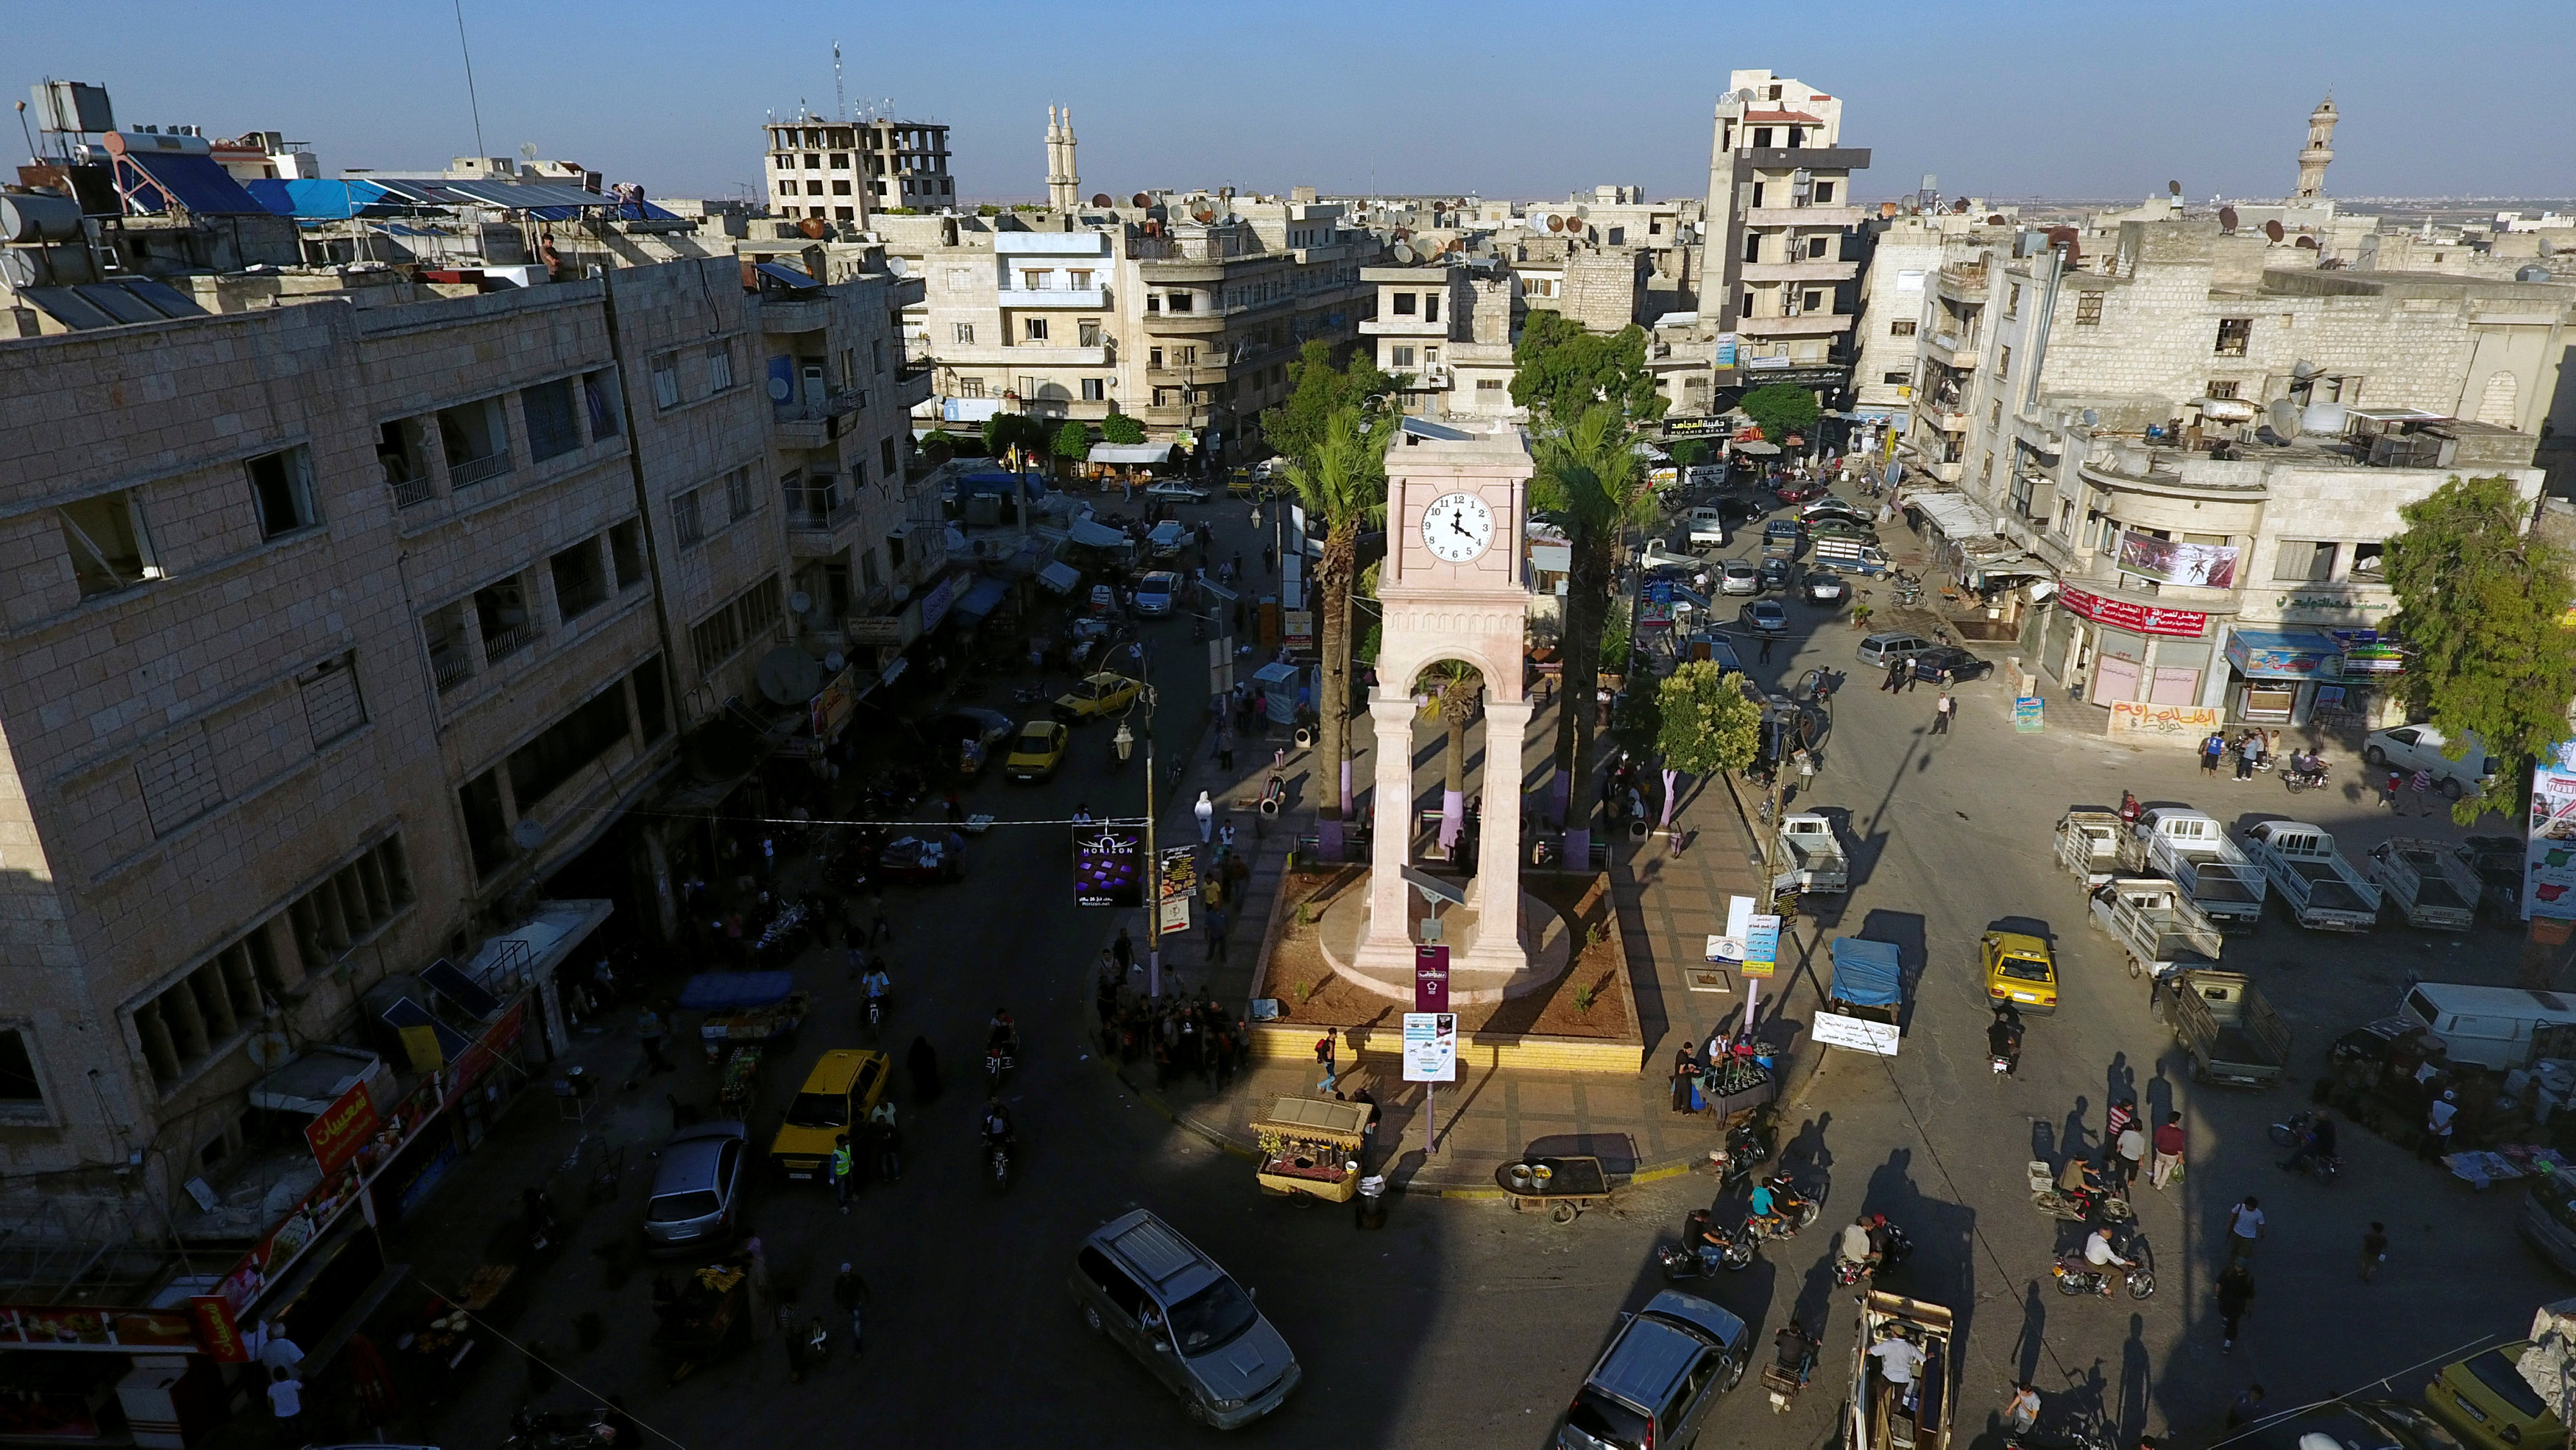 FILE PHOTO:A general view taken with a drone shows the Clock Tower of the rebel-held Idlib city, Syria June 8, 2017. REUTERS/Ammar Abdullah/File Photo